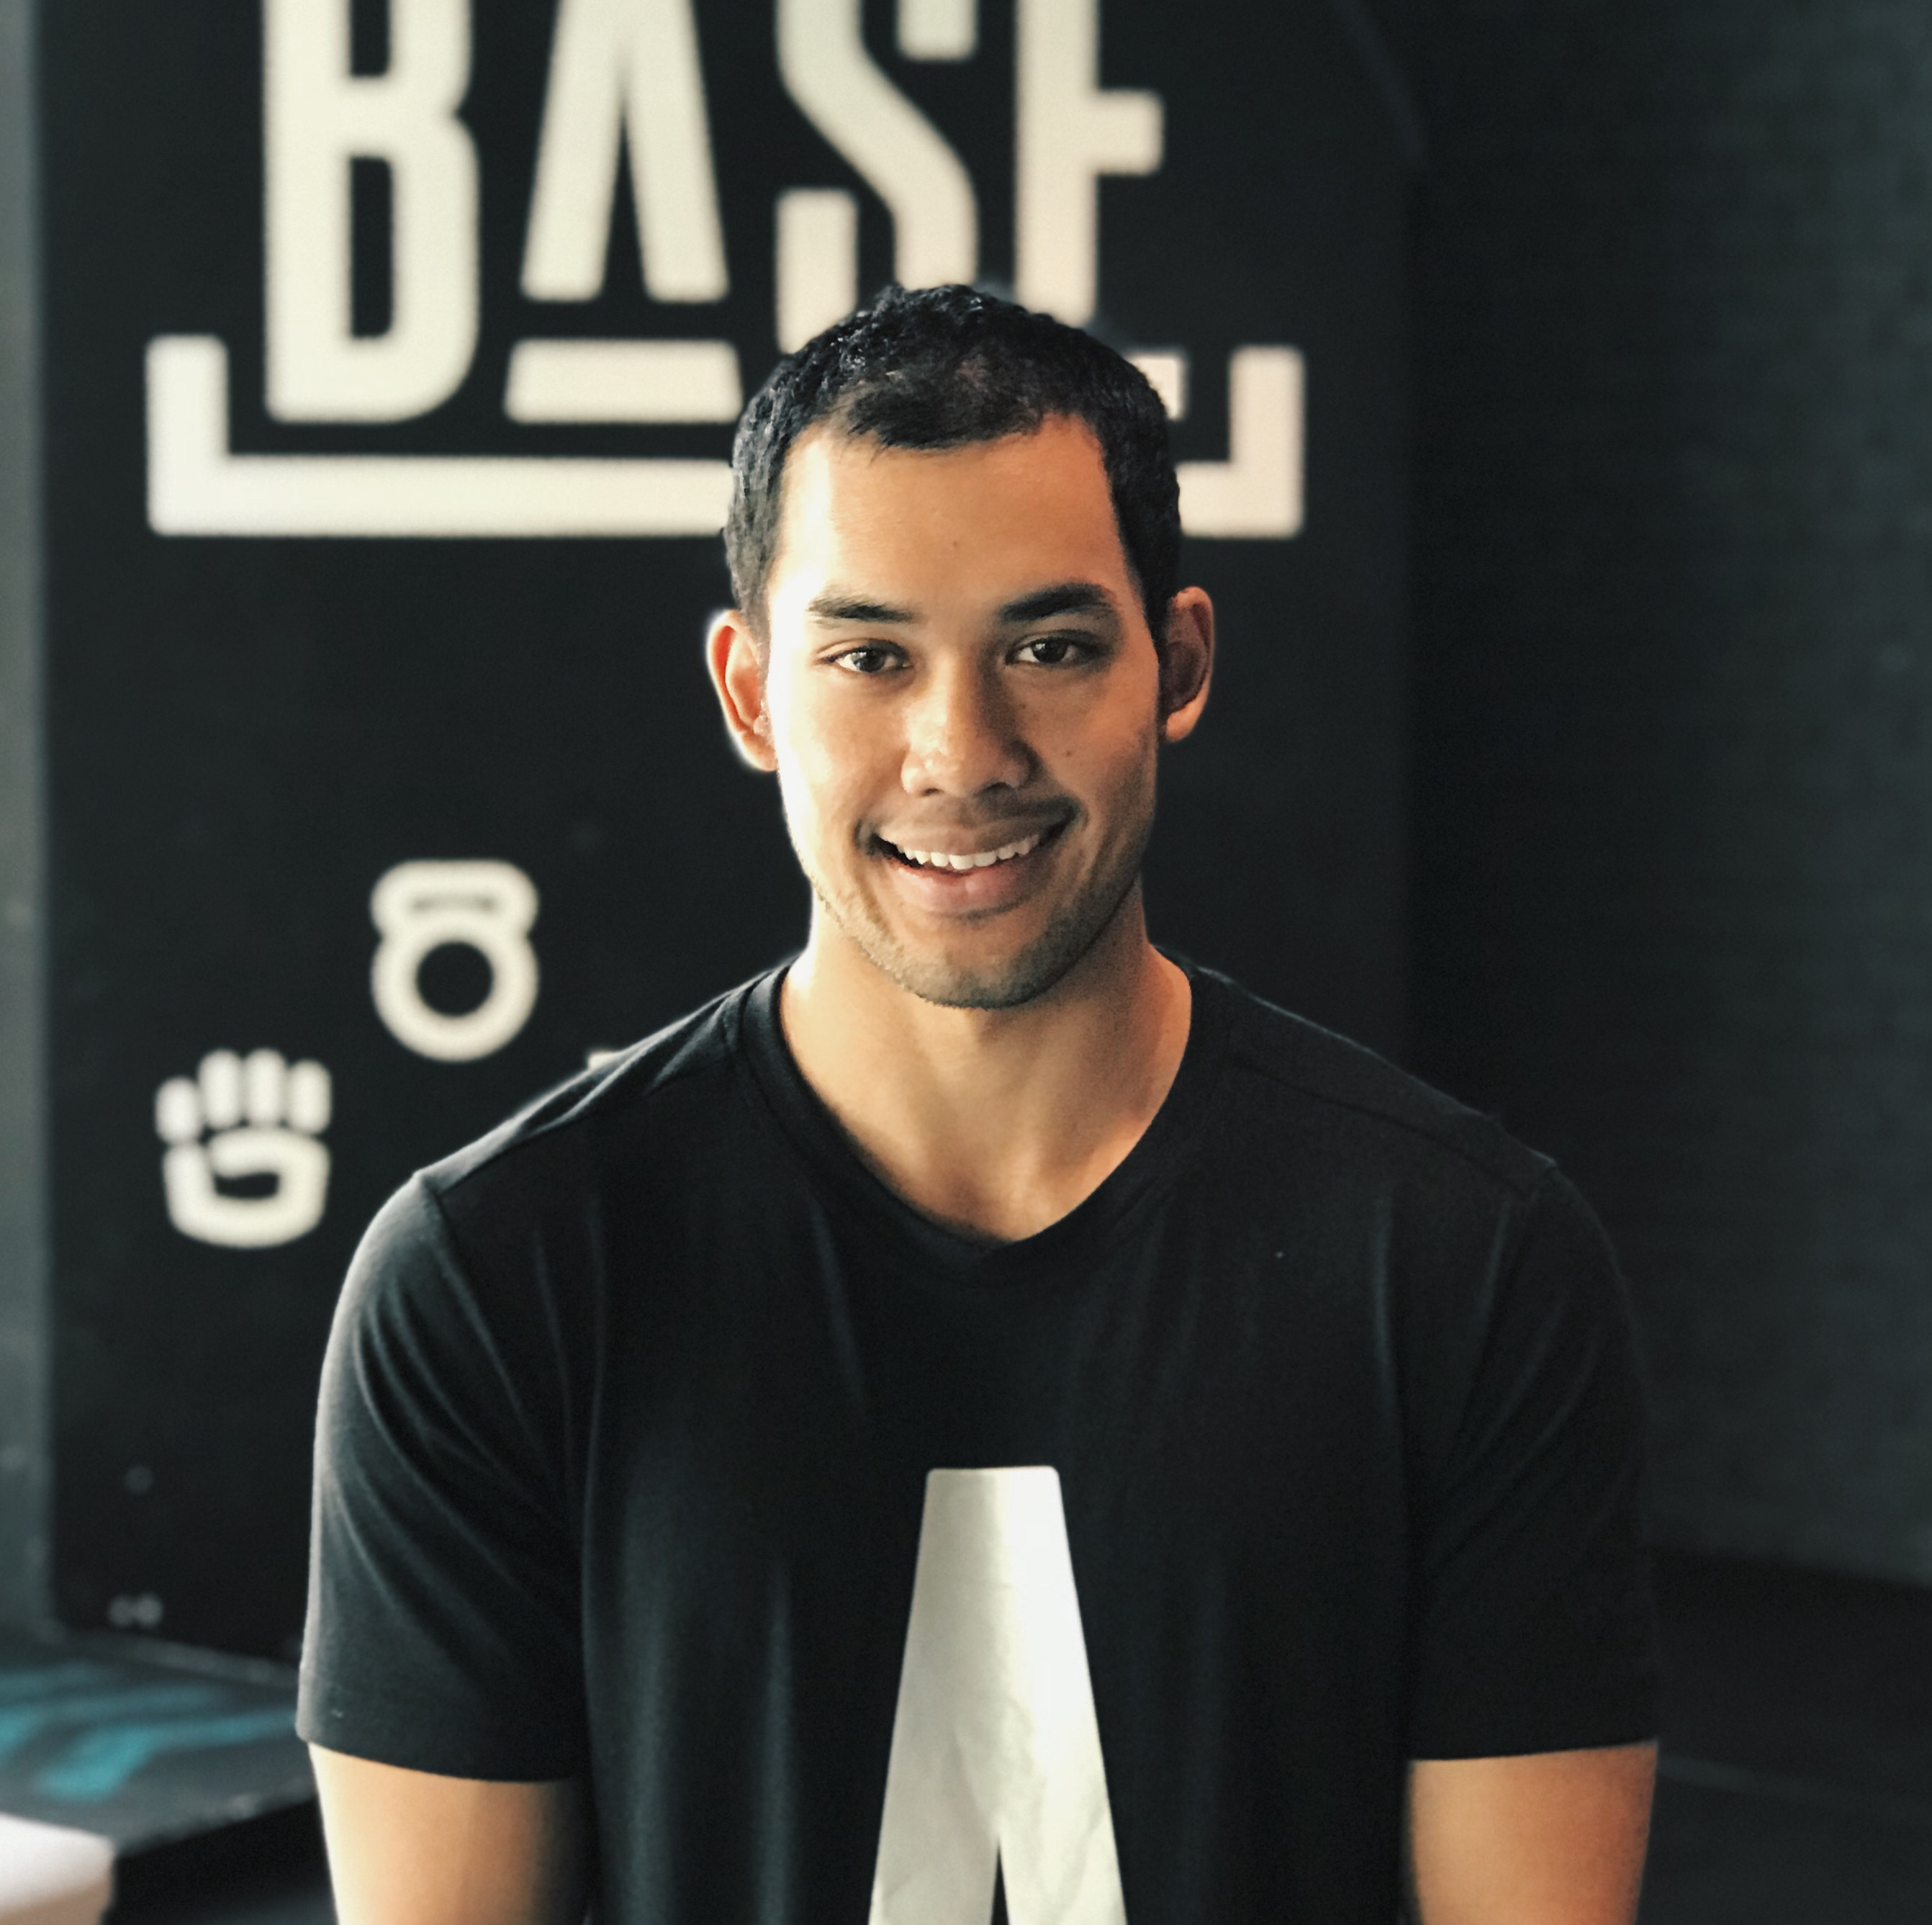 BASE Lowdown: Personal Training Coach Chort